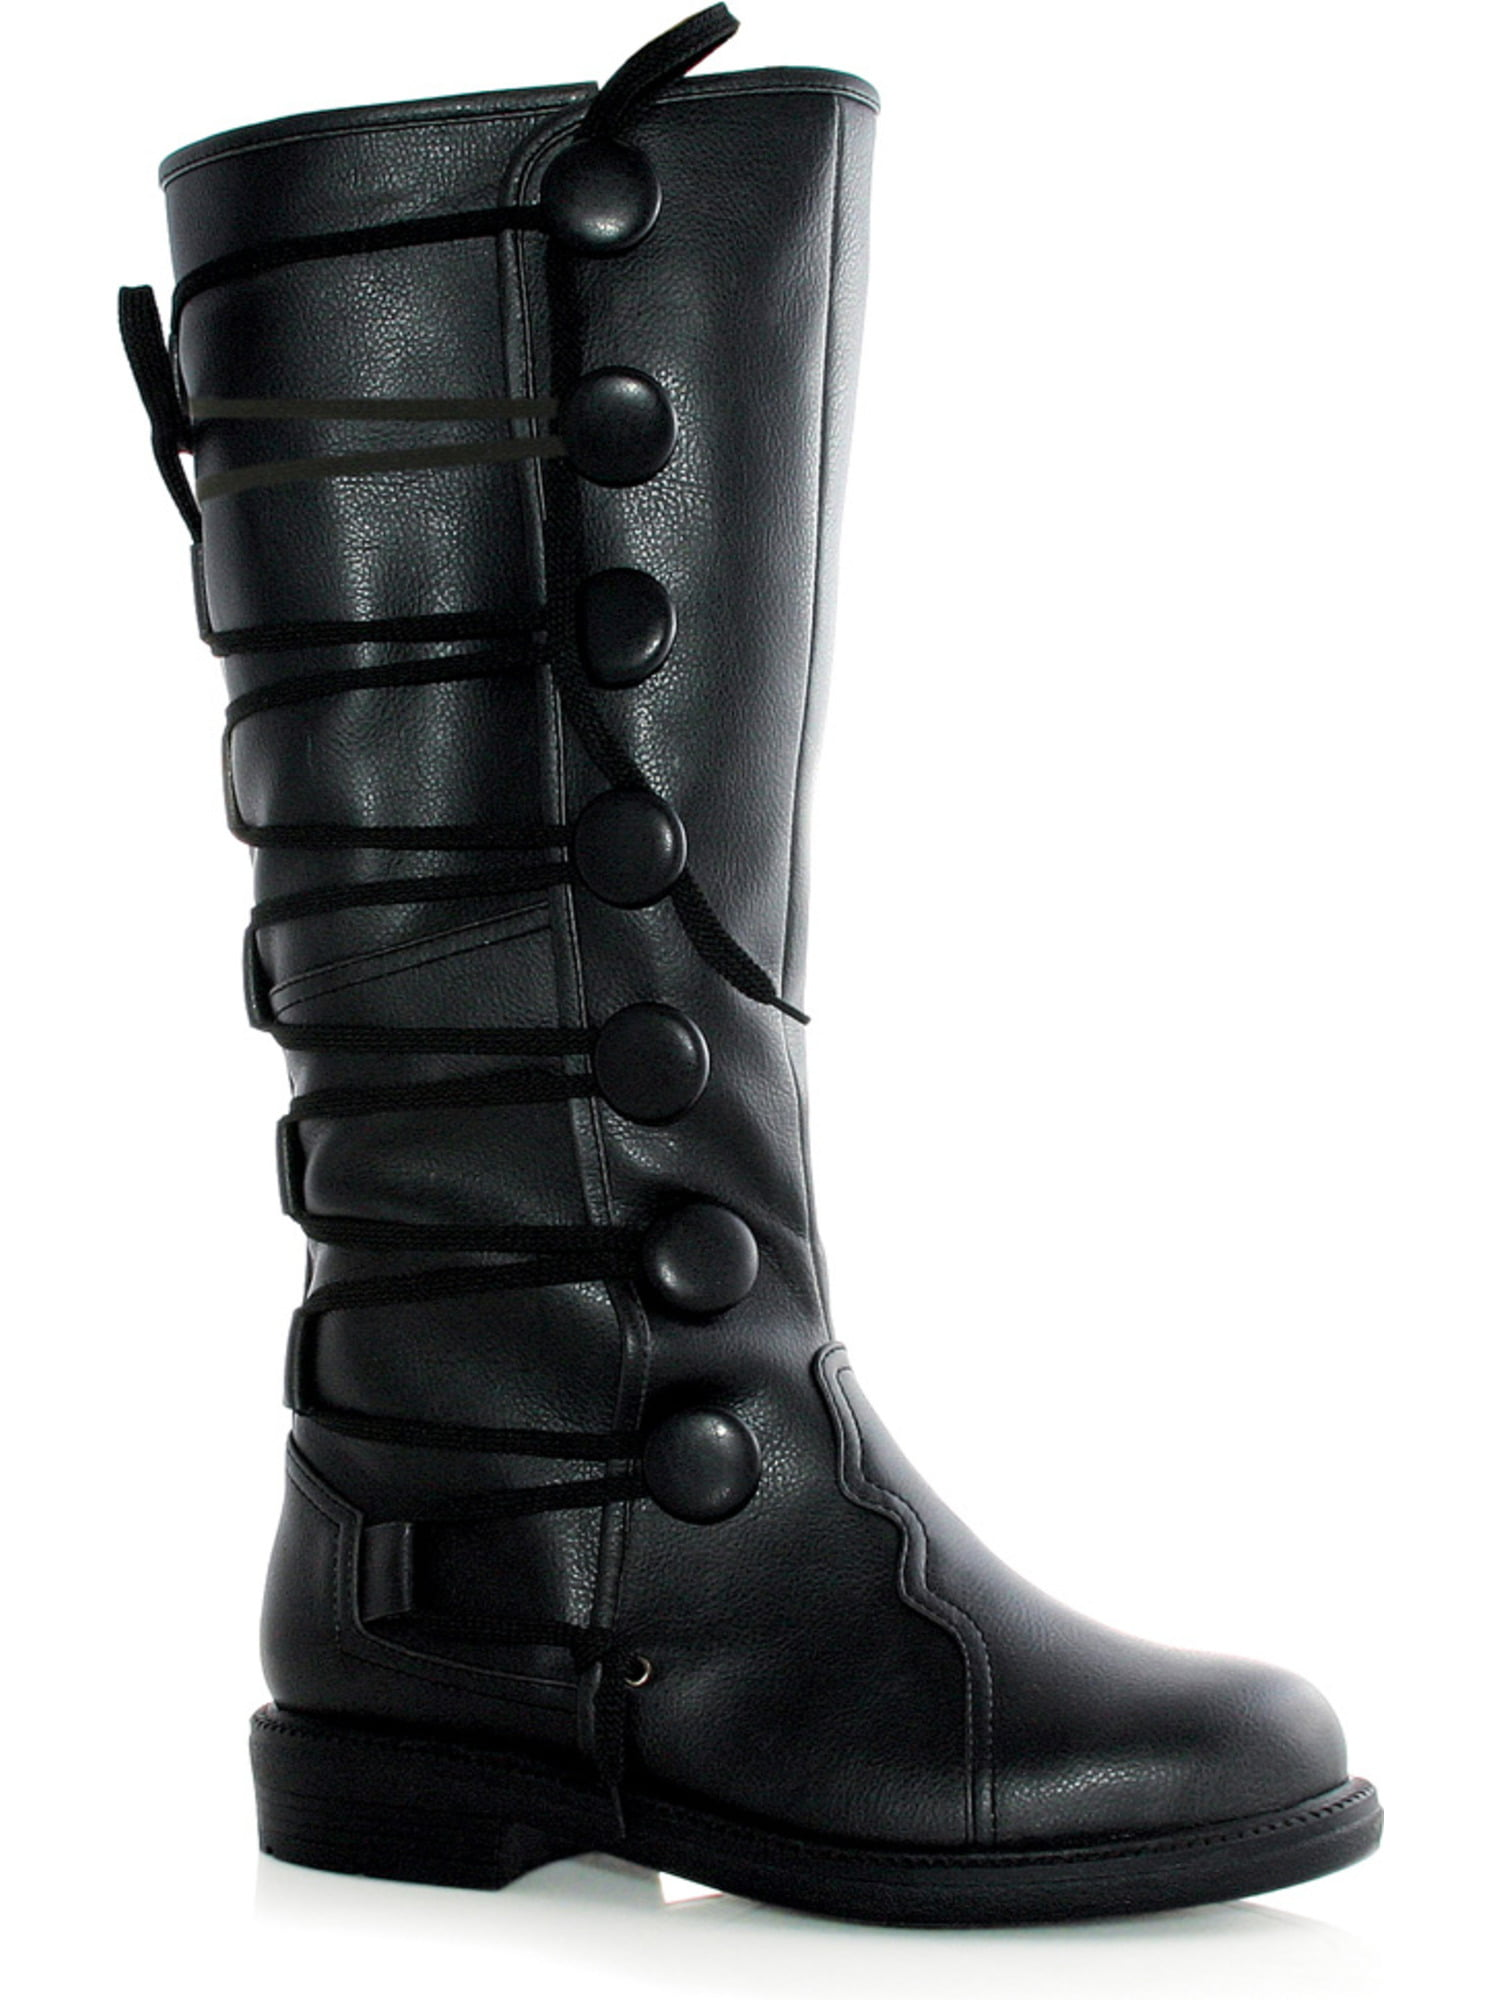 MENS SIZING 1 Inch Heel Pull Tab Button Knee High Boots Renaissance Dark Ages